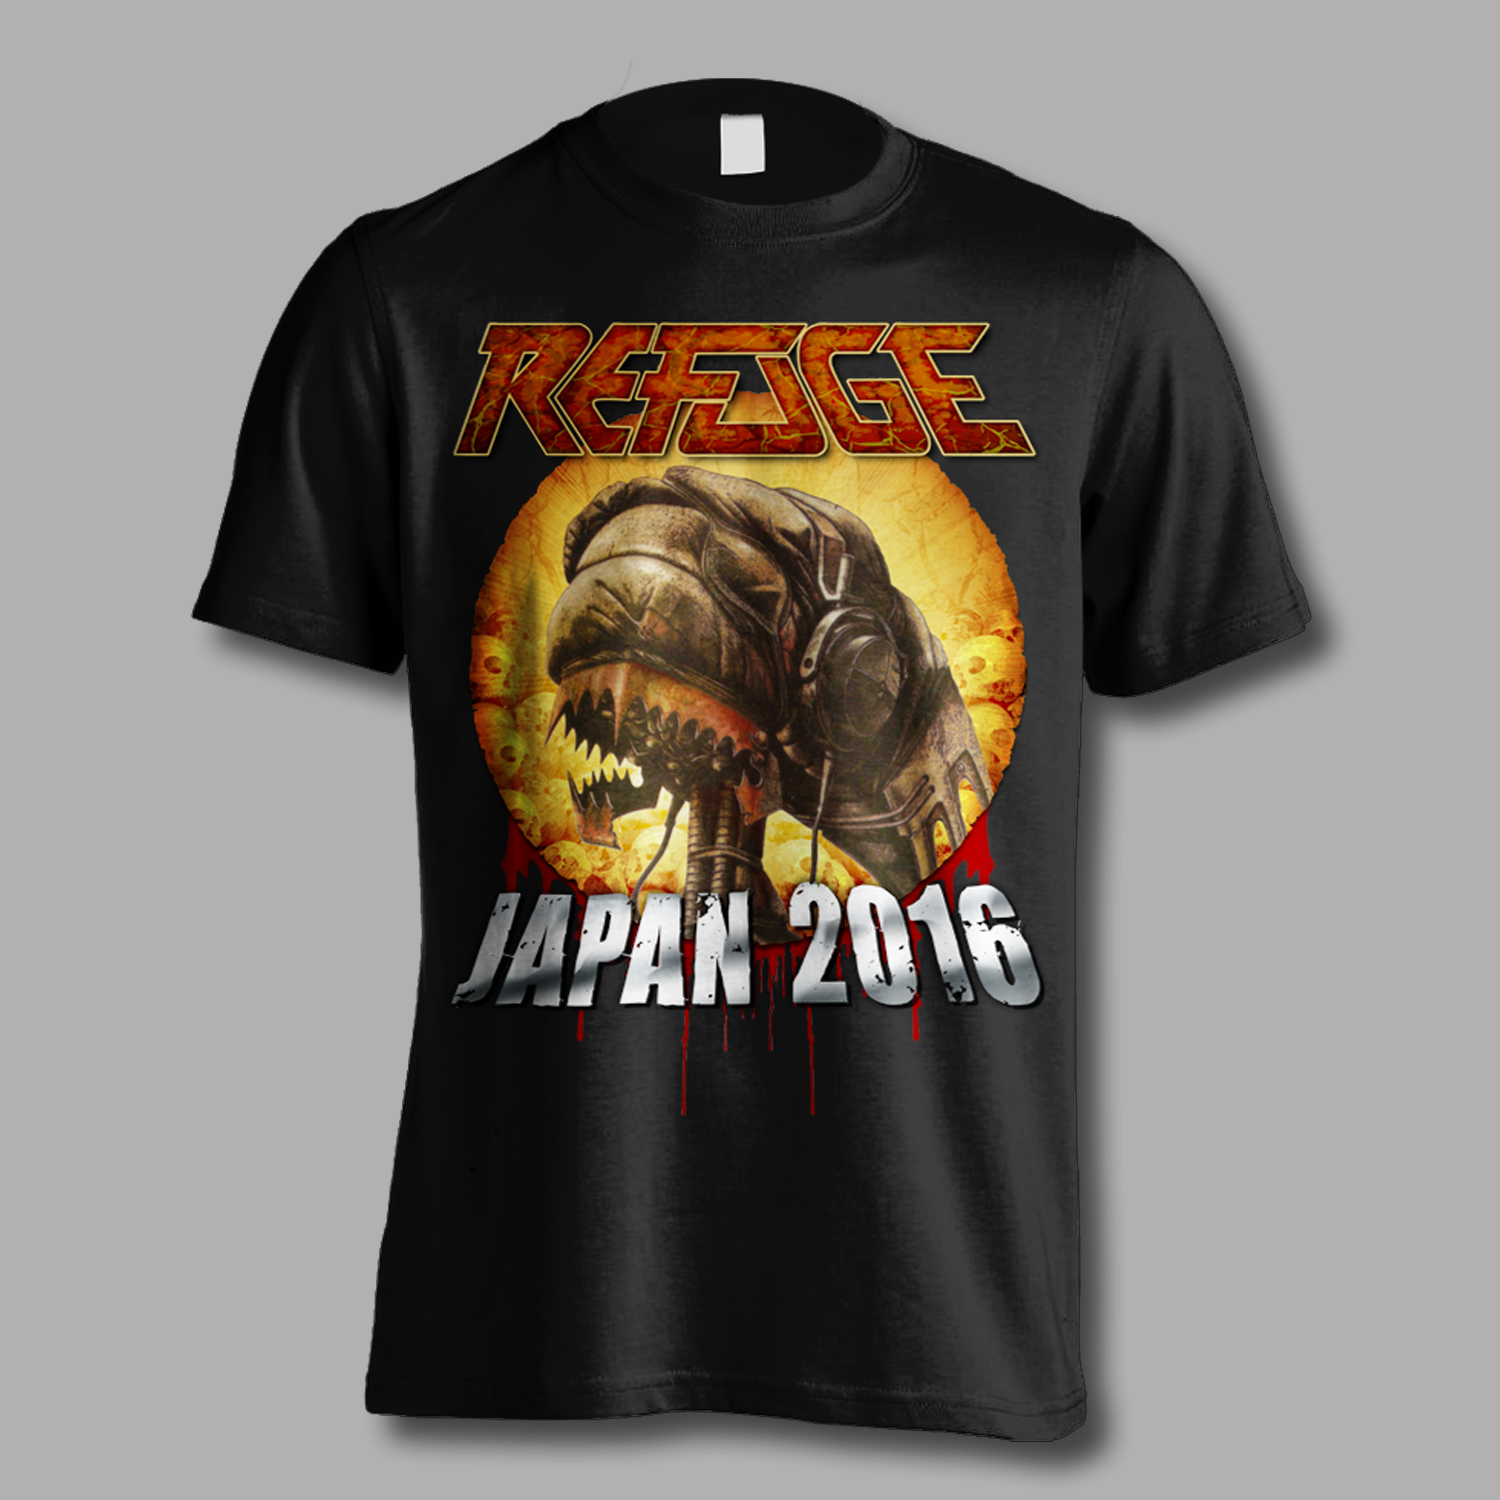 Refuge Japan 2016 Tour Shirt - Front